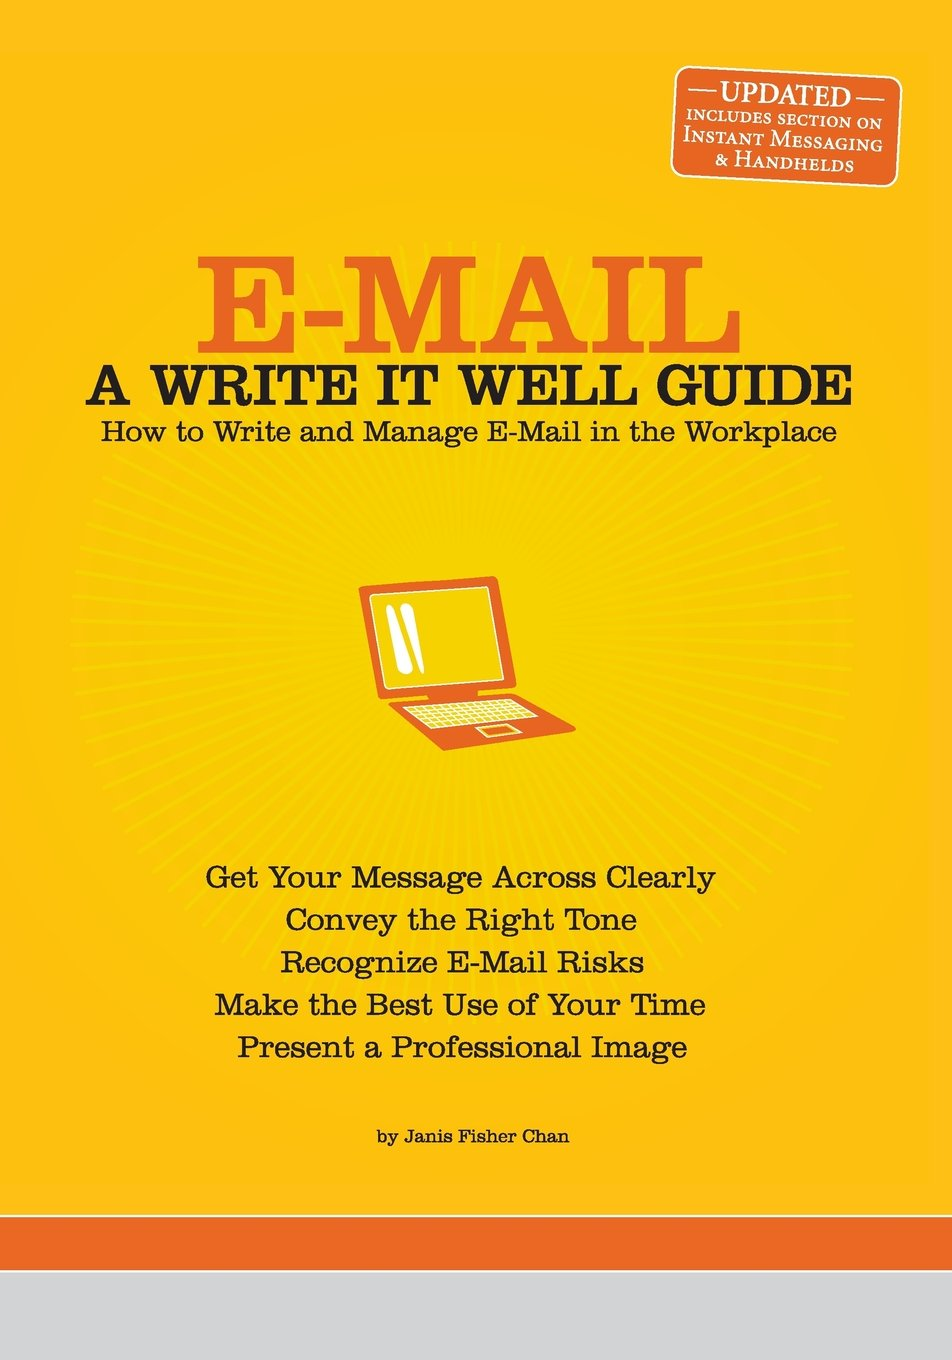 Amazon e mail a write it well guide 9780963745590 janis amazon e mail a write it well guide 9780963745590 janis fisher chan books altavistaventures Images